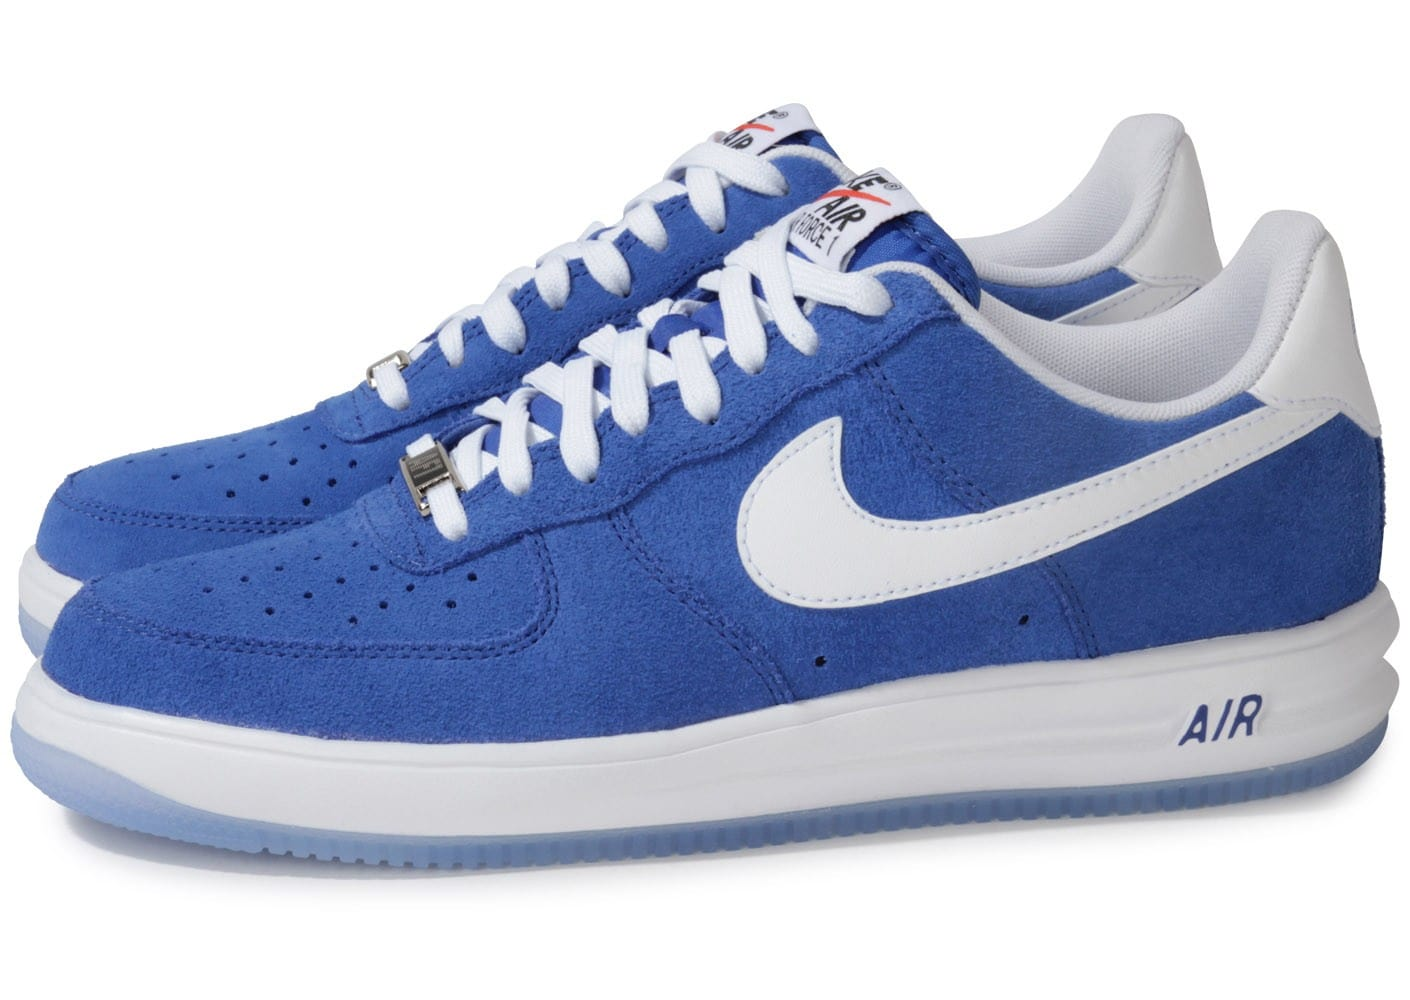 plus récent d9cae 345c9 Nike Air Force One Basse Bleu song-net.fr